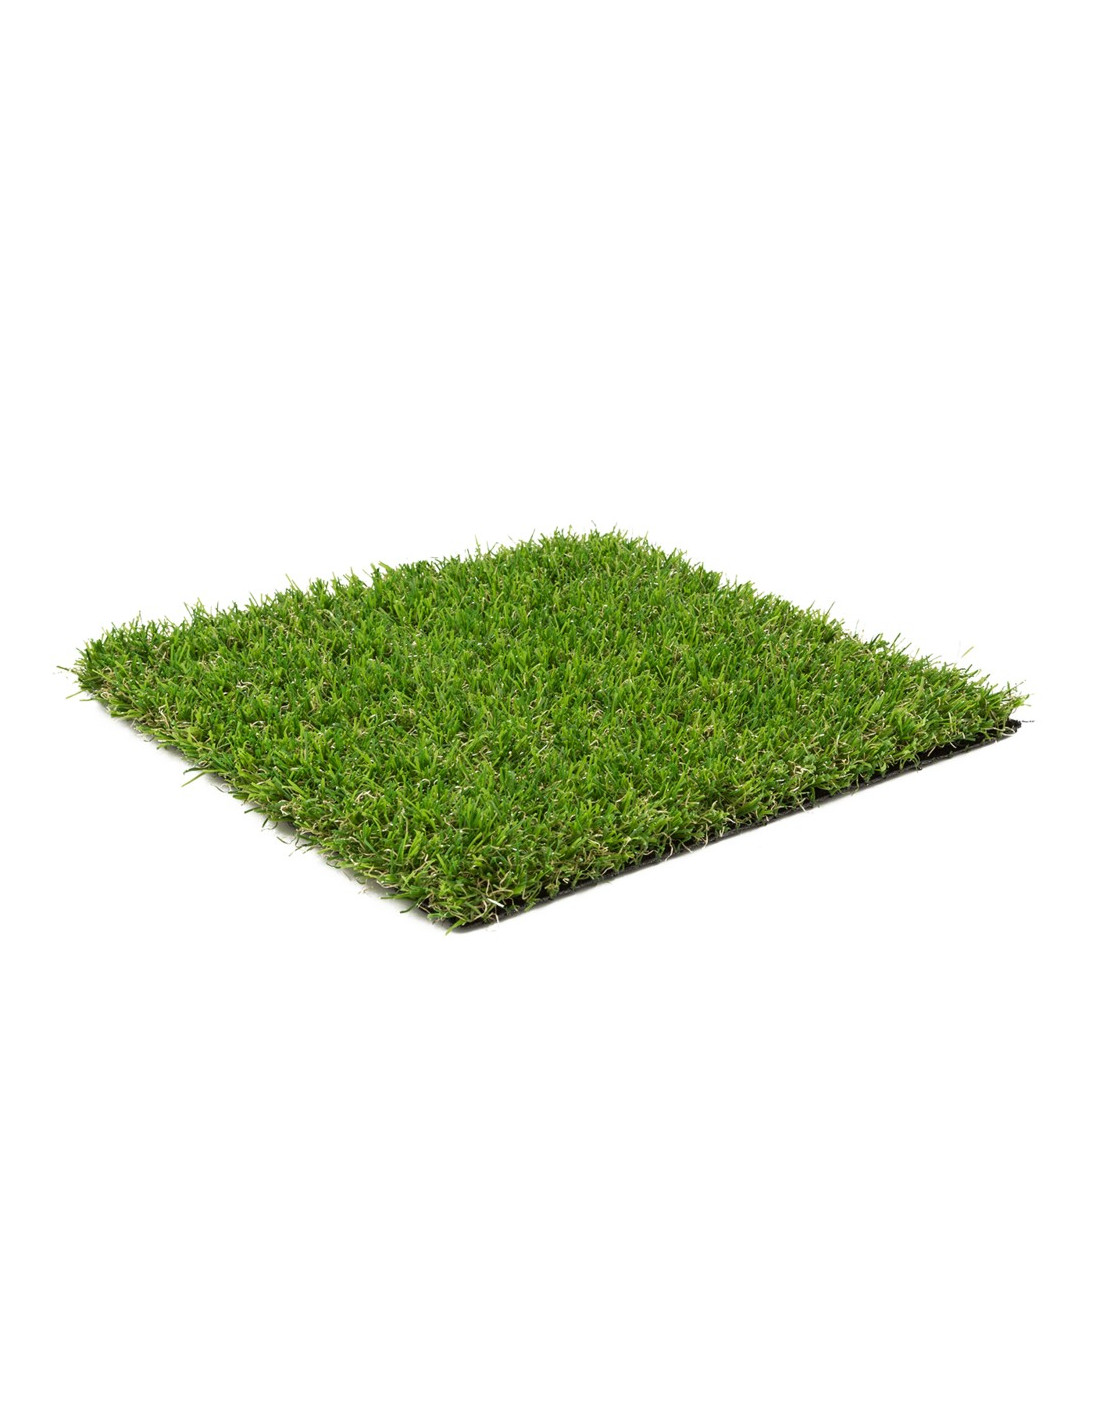 Beaulieu moquette gazon artificiel evergreen 7000 groen 4m for Moquette gazon exterieur